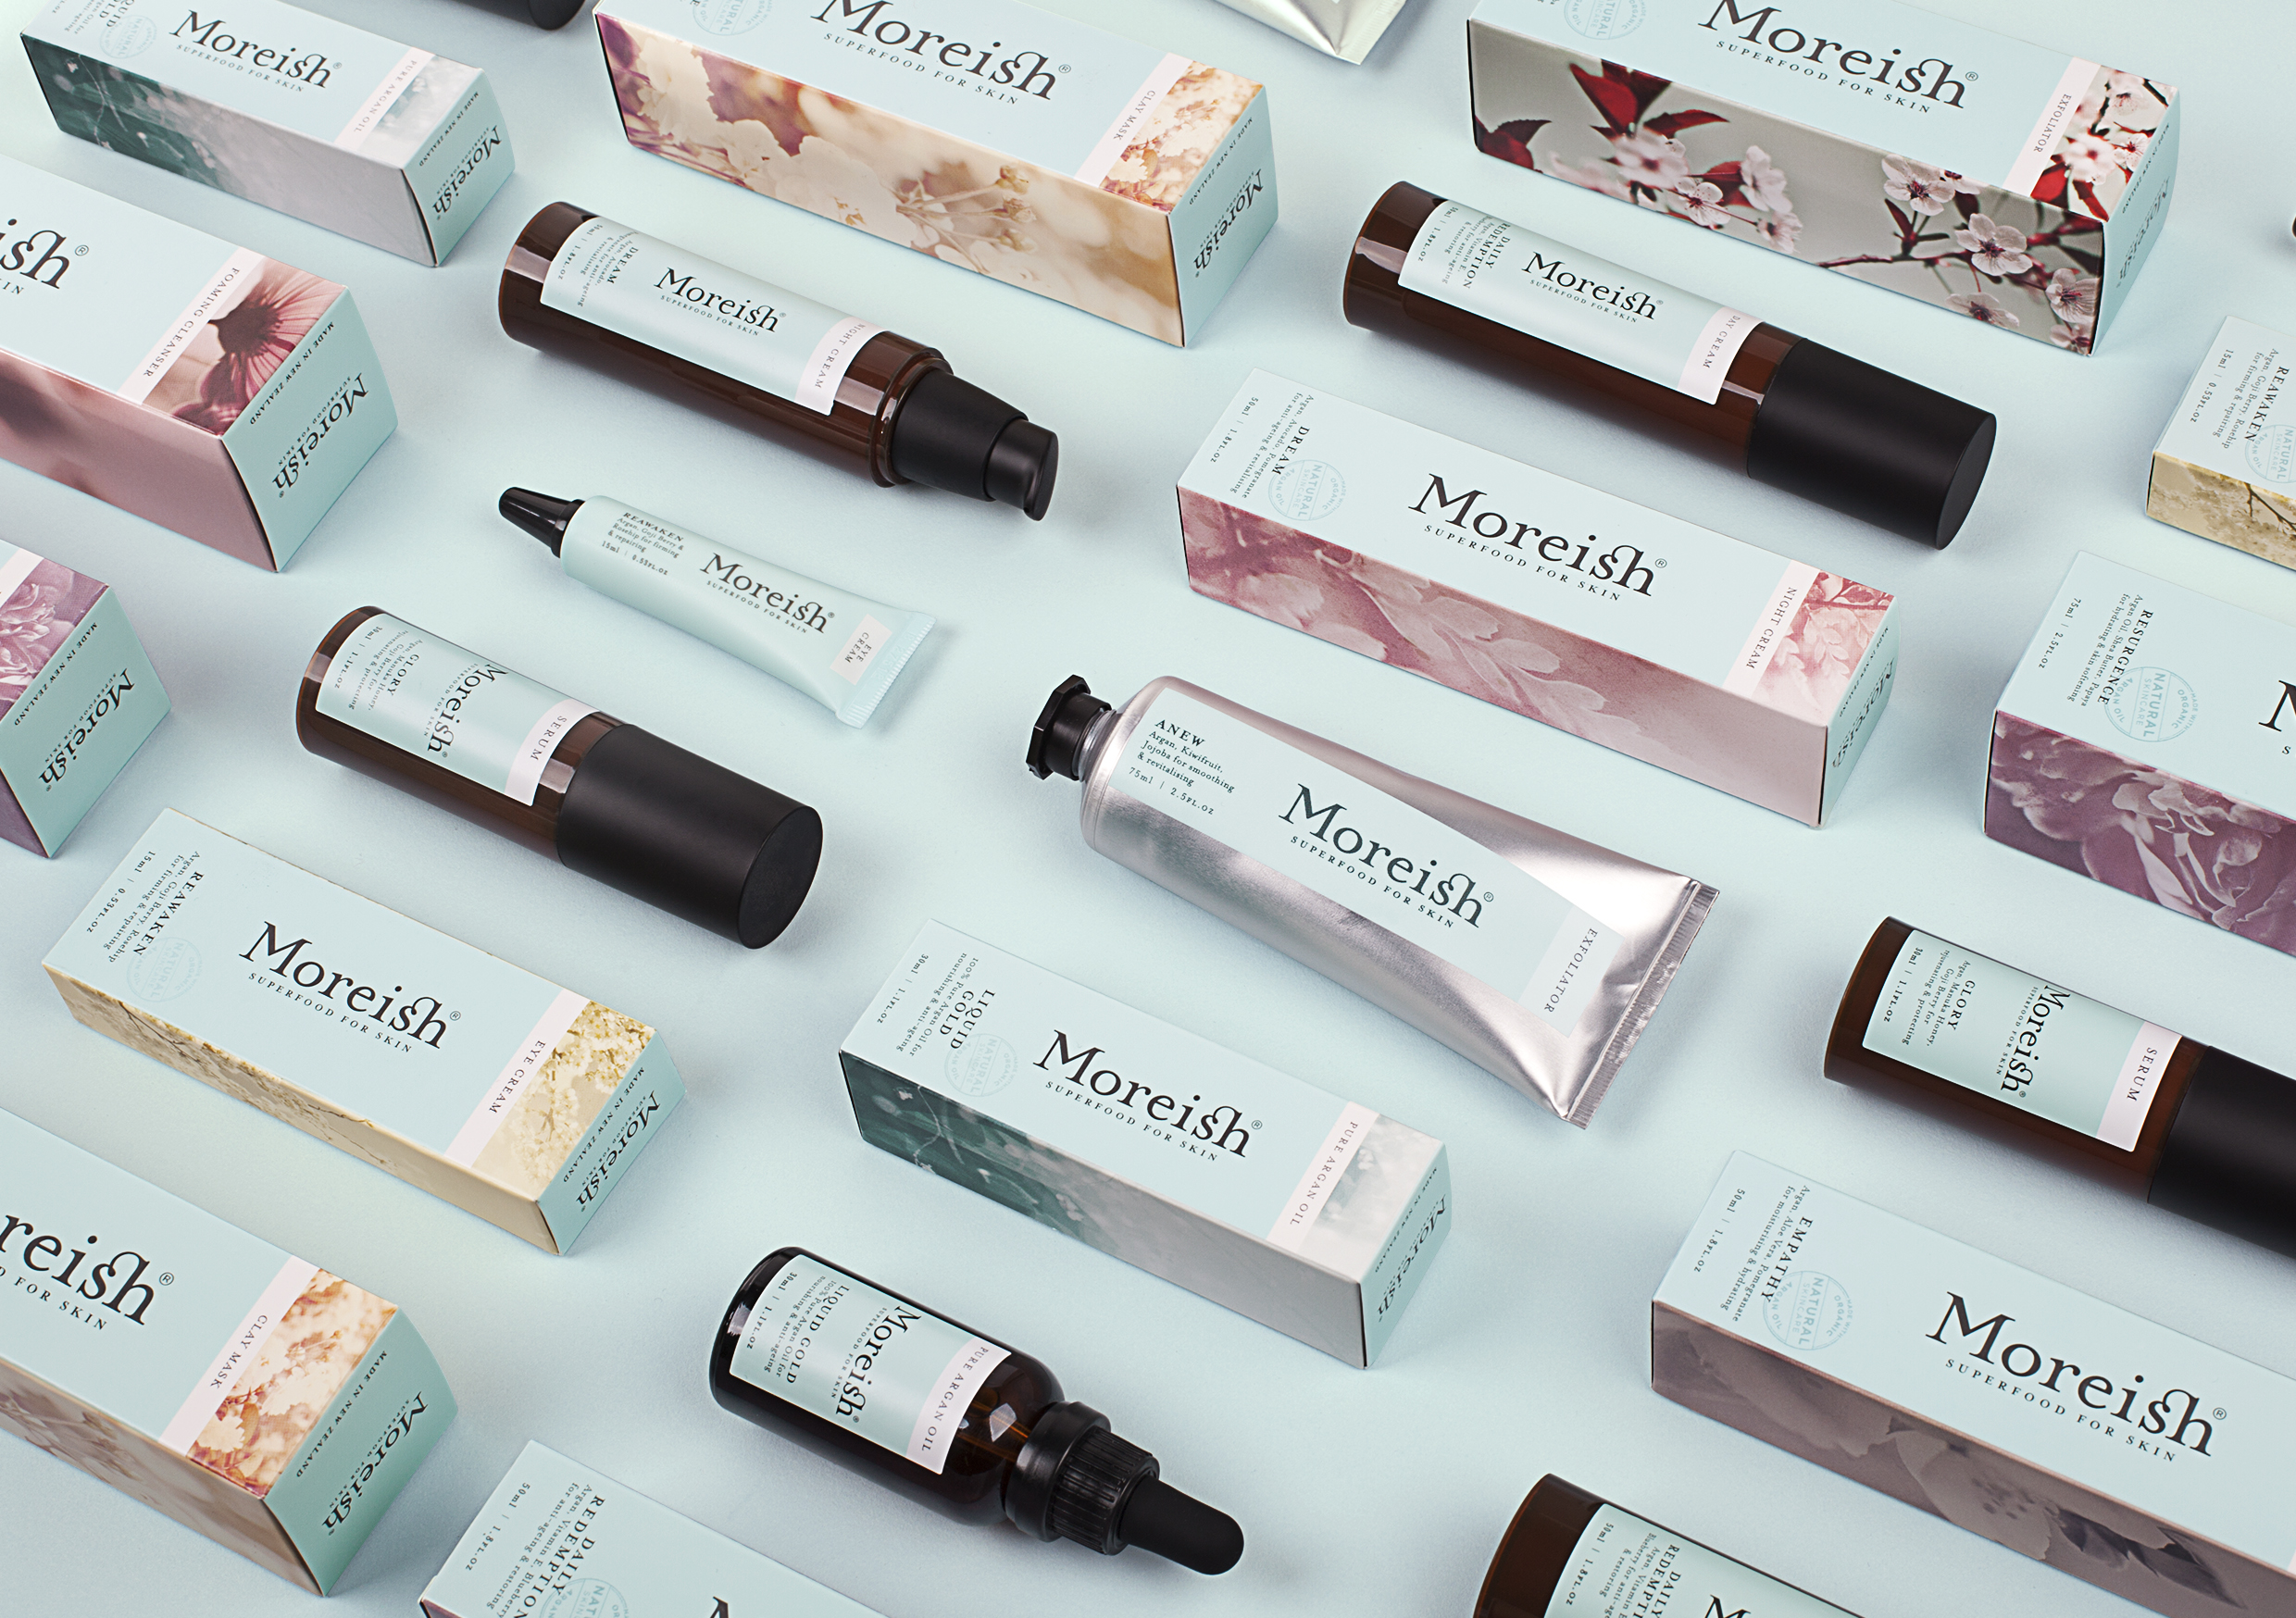 Moreish Superfood for Skin Products, Image: thedieline.com